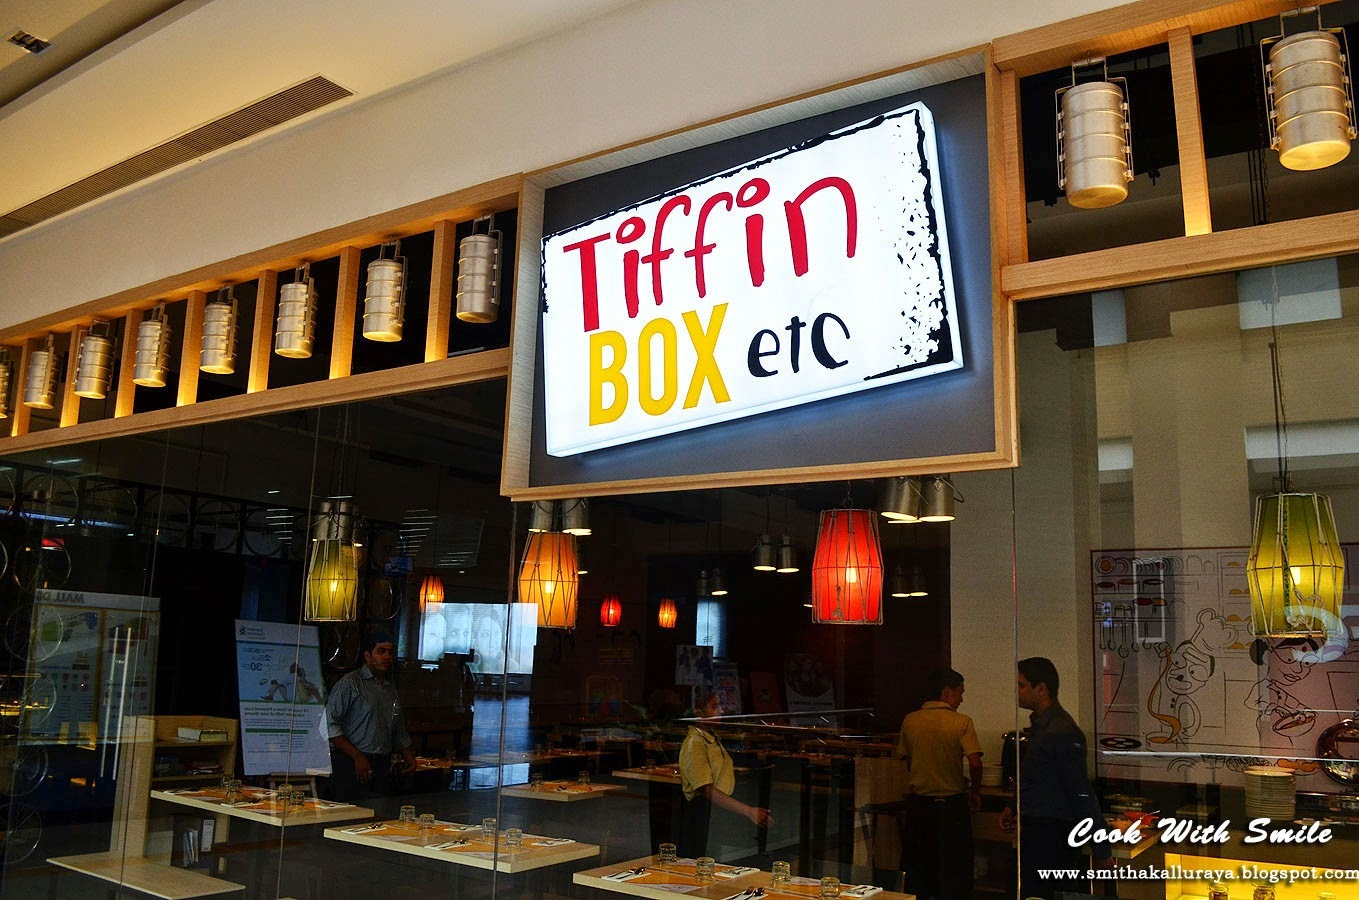 RESTAURANT REVIEW - TIFFIN BOX Etc., BANGALORE